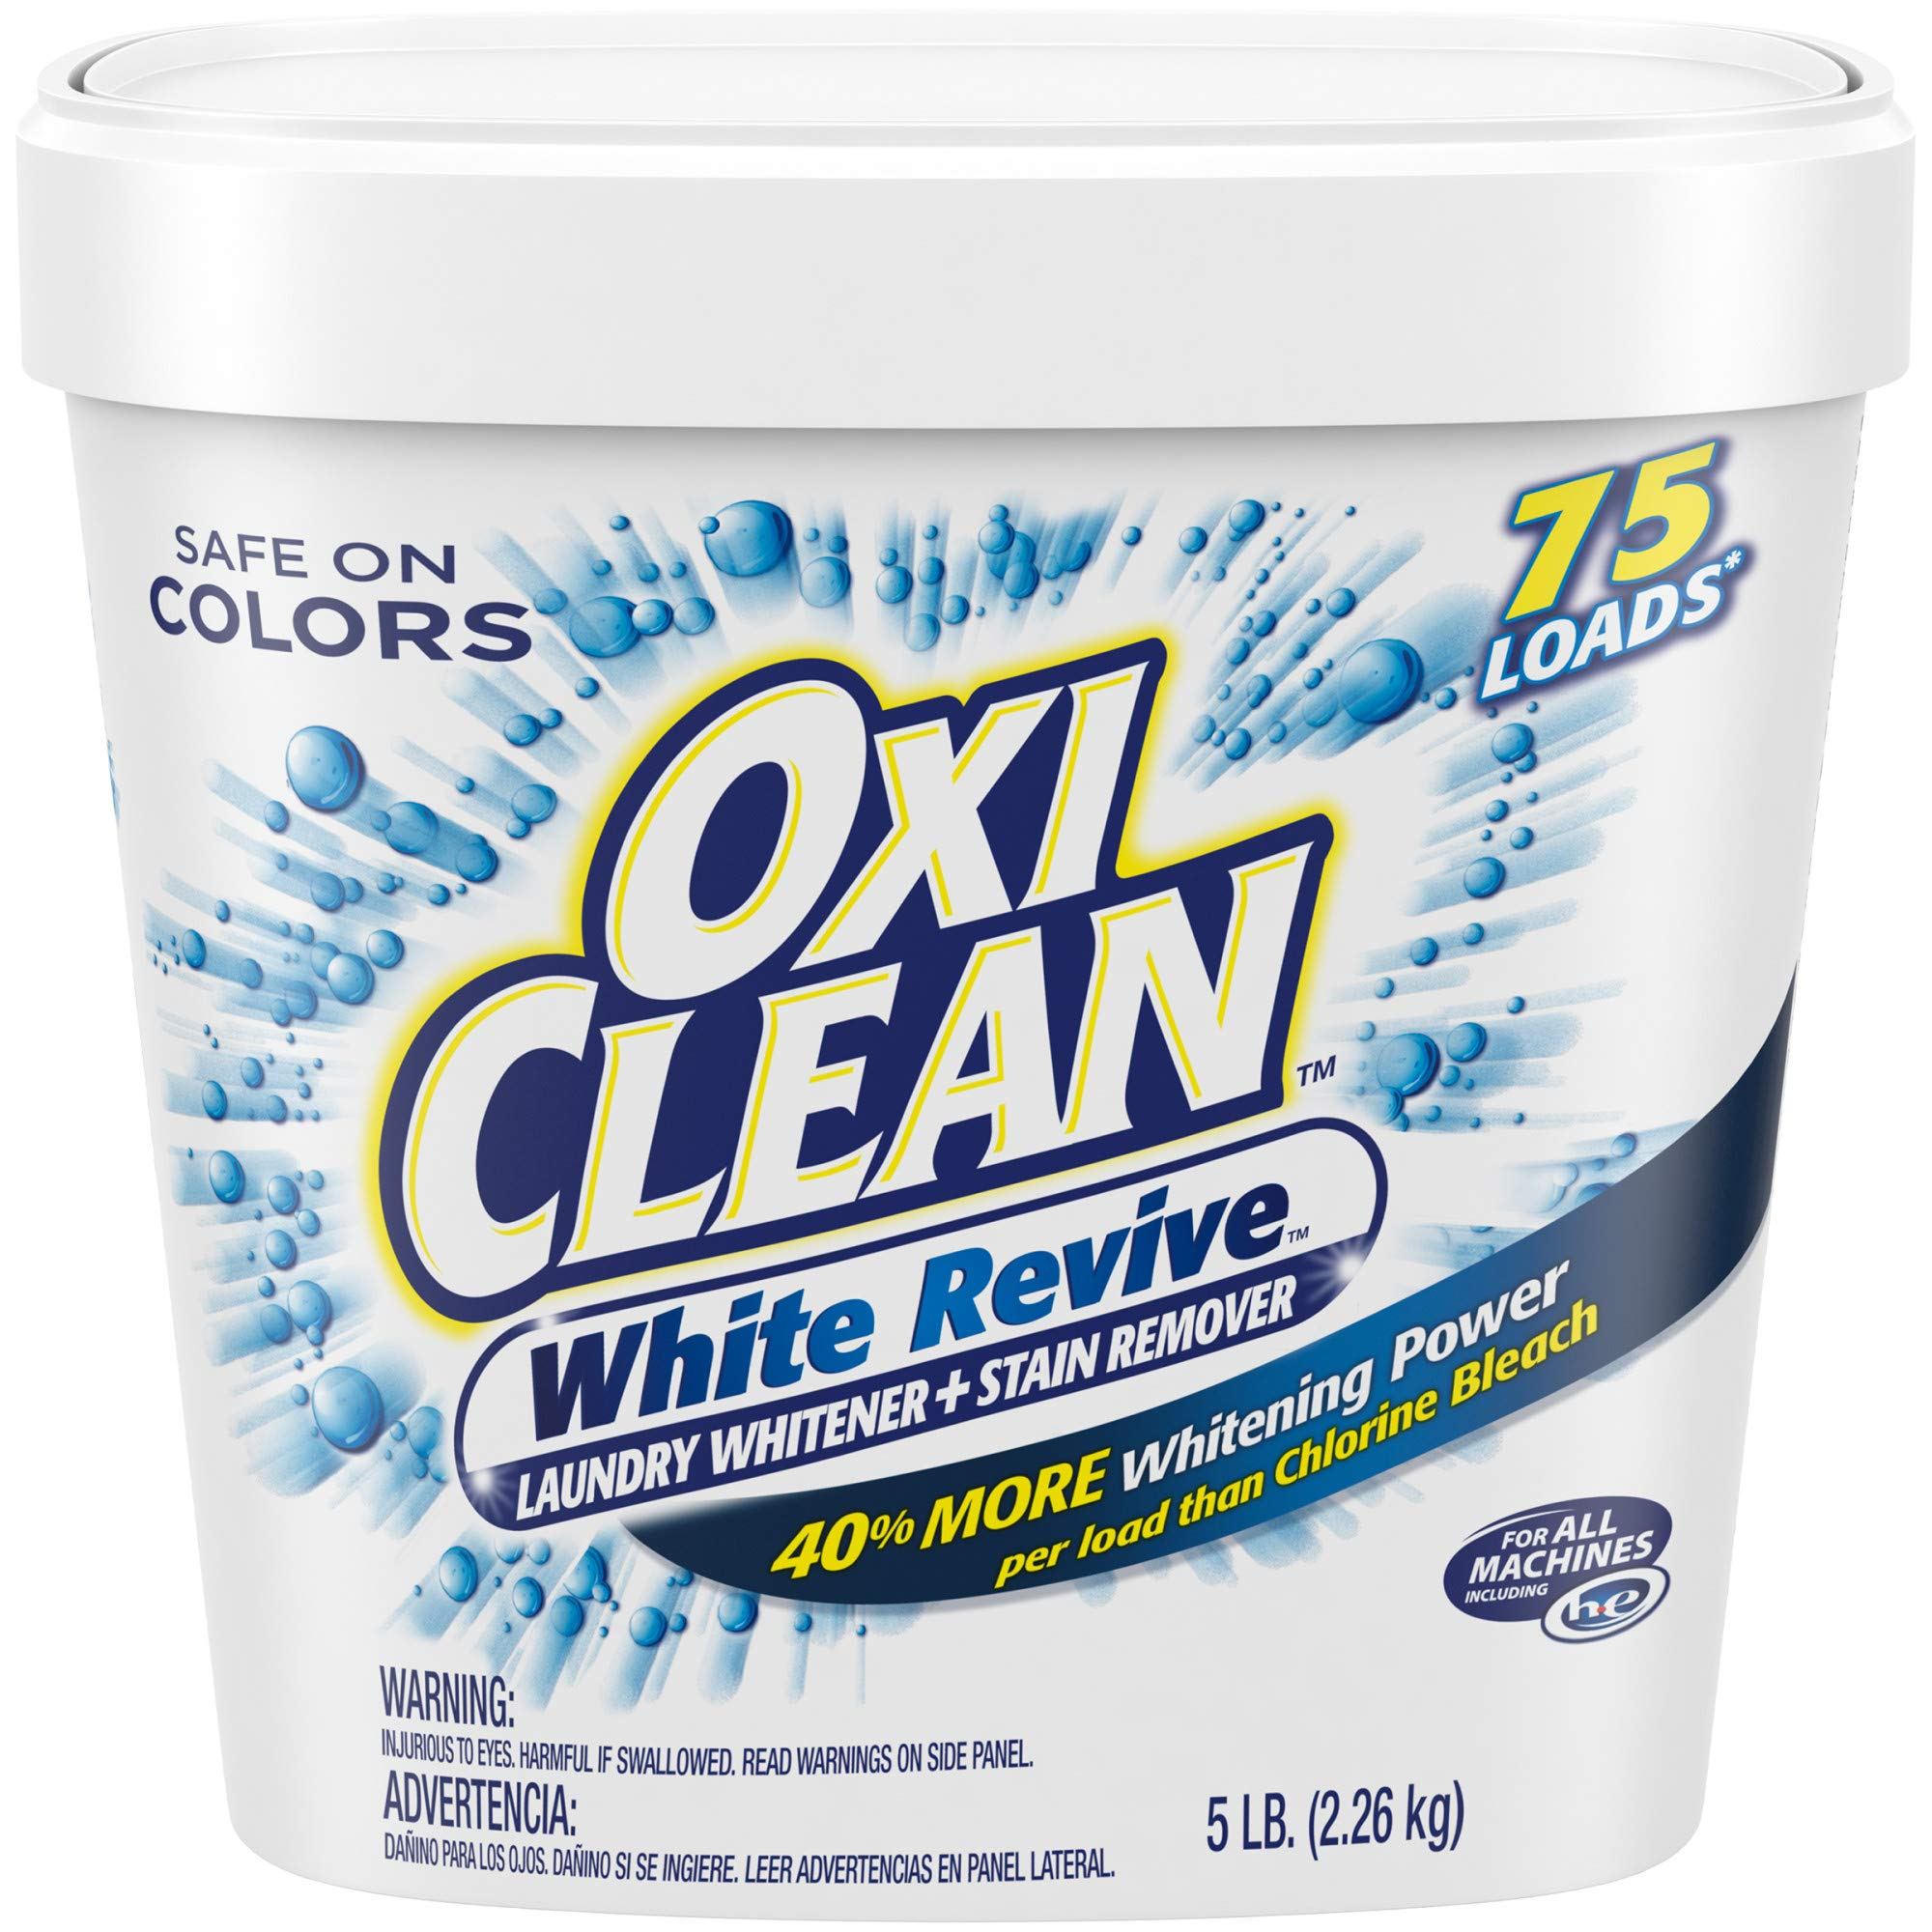 OxiClean White Revive Laundry Whitener + Stain Remover, 80 Ounce